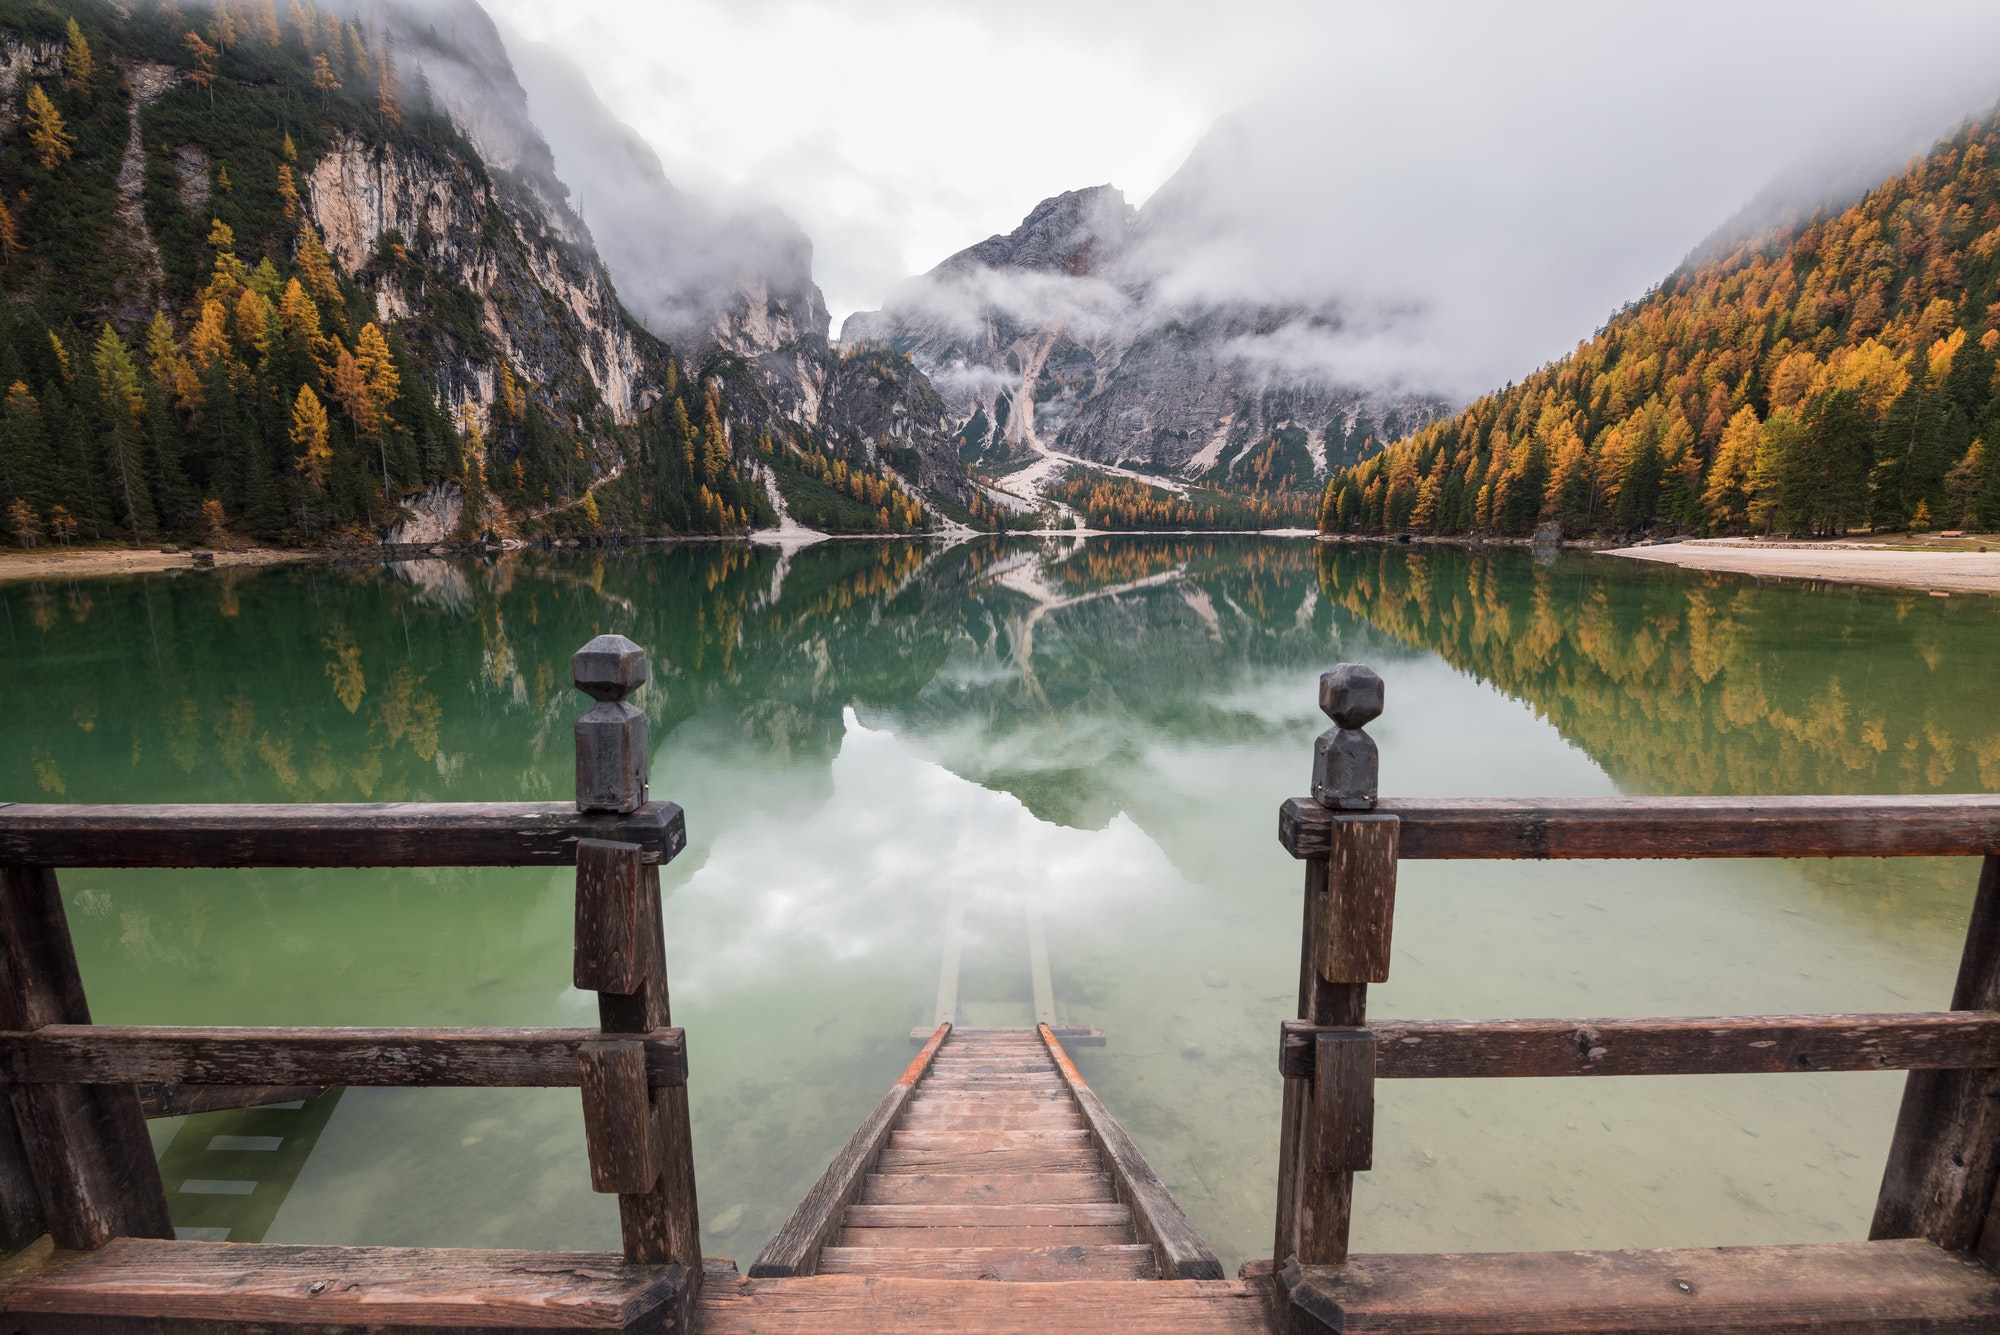 moody-autumn-day-in-the-dolomites-forest-and-mountains.jpg